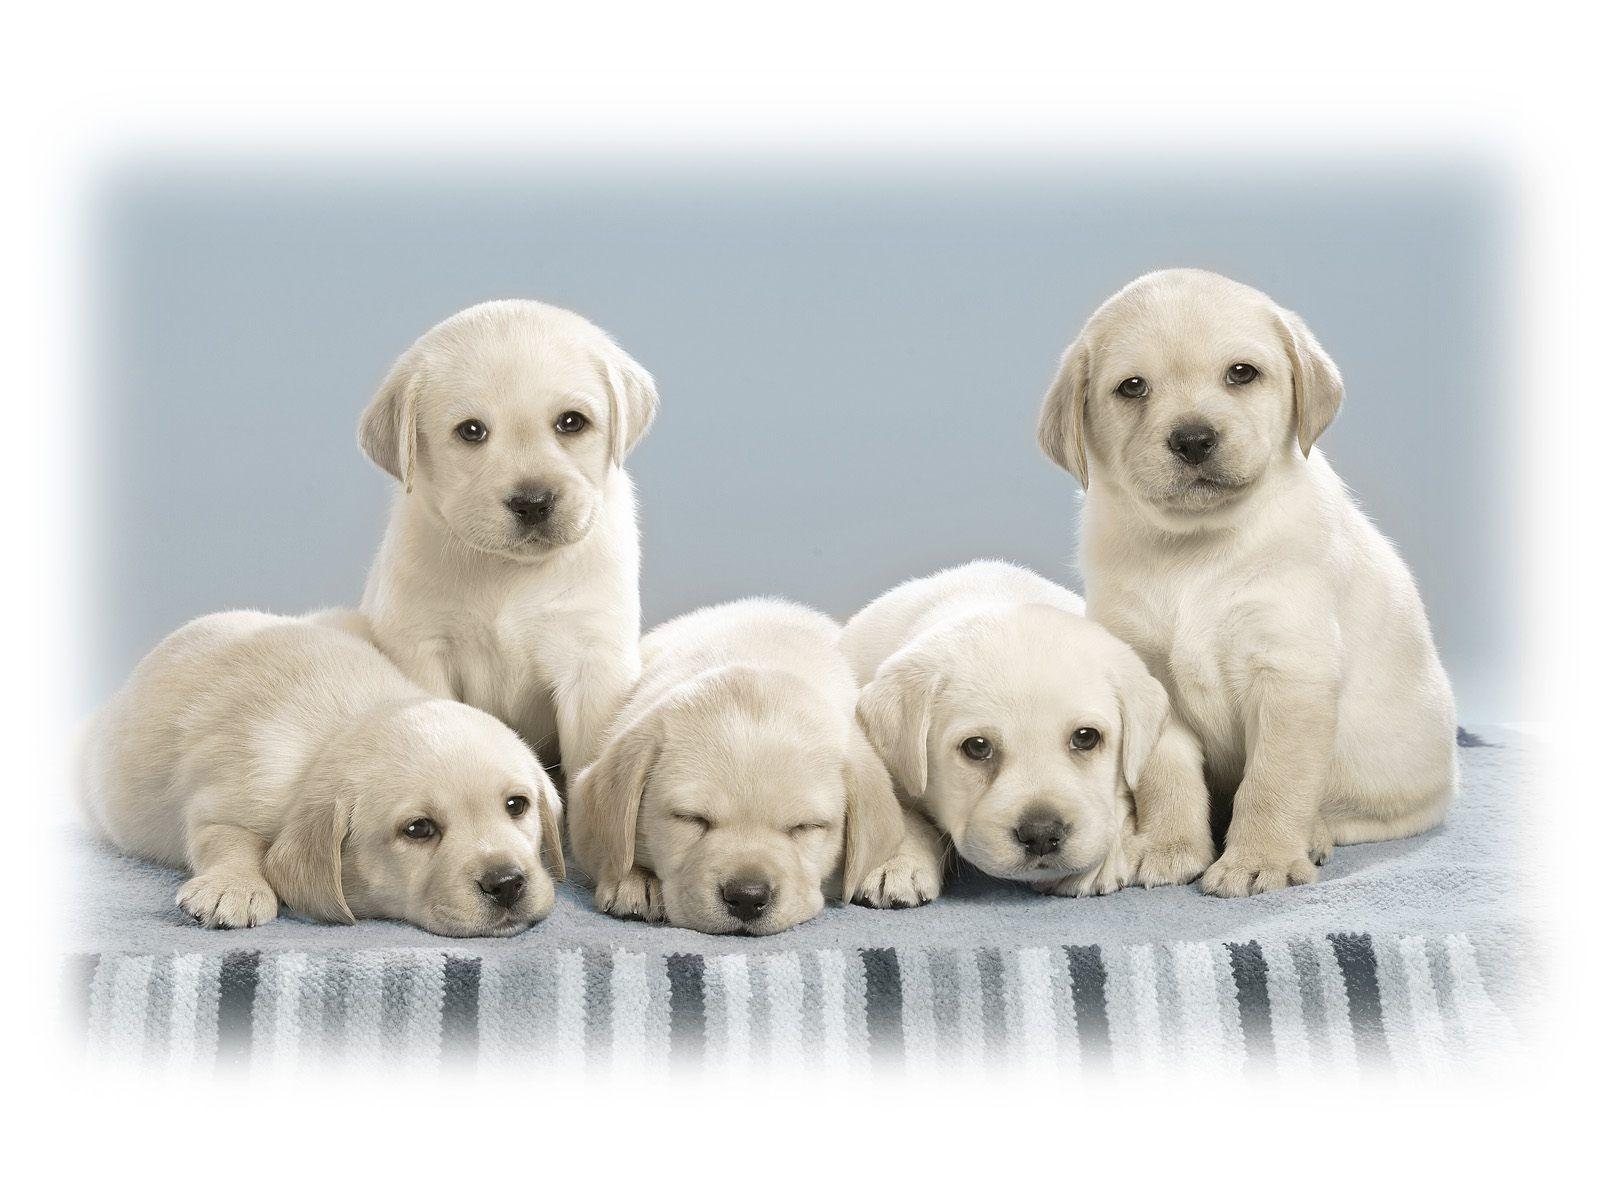 Free Puppy Wallpapers For Computer Wallpaper